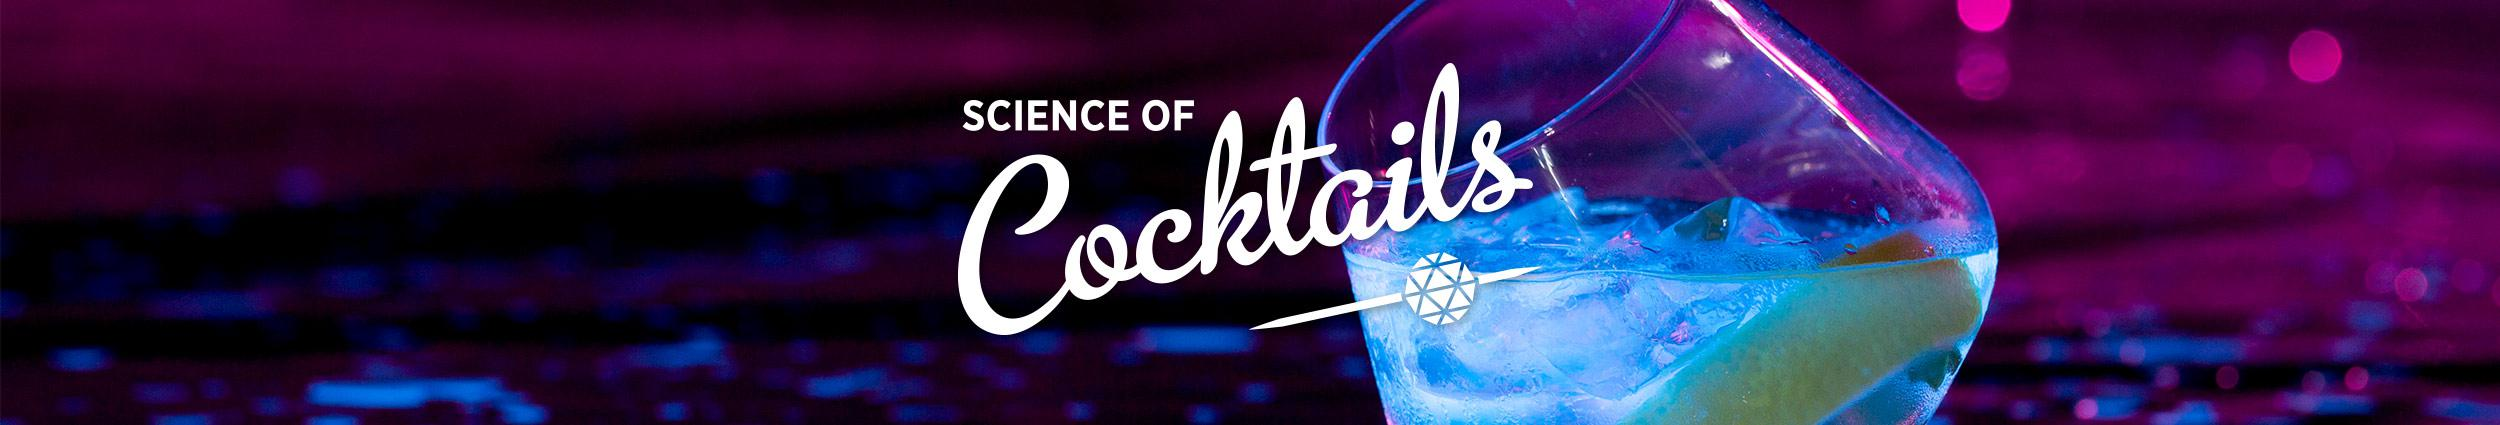 Second Annual Science of Cocktails Raises $240,000 for Class Field Trips to Science World